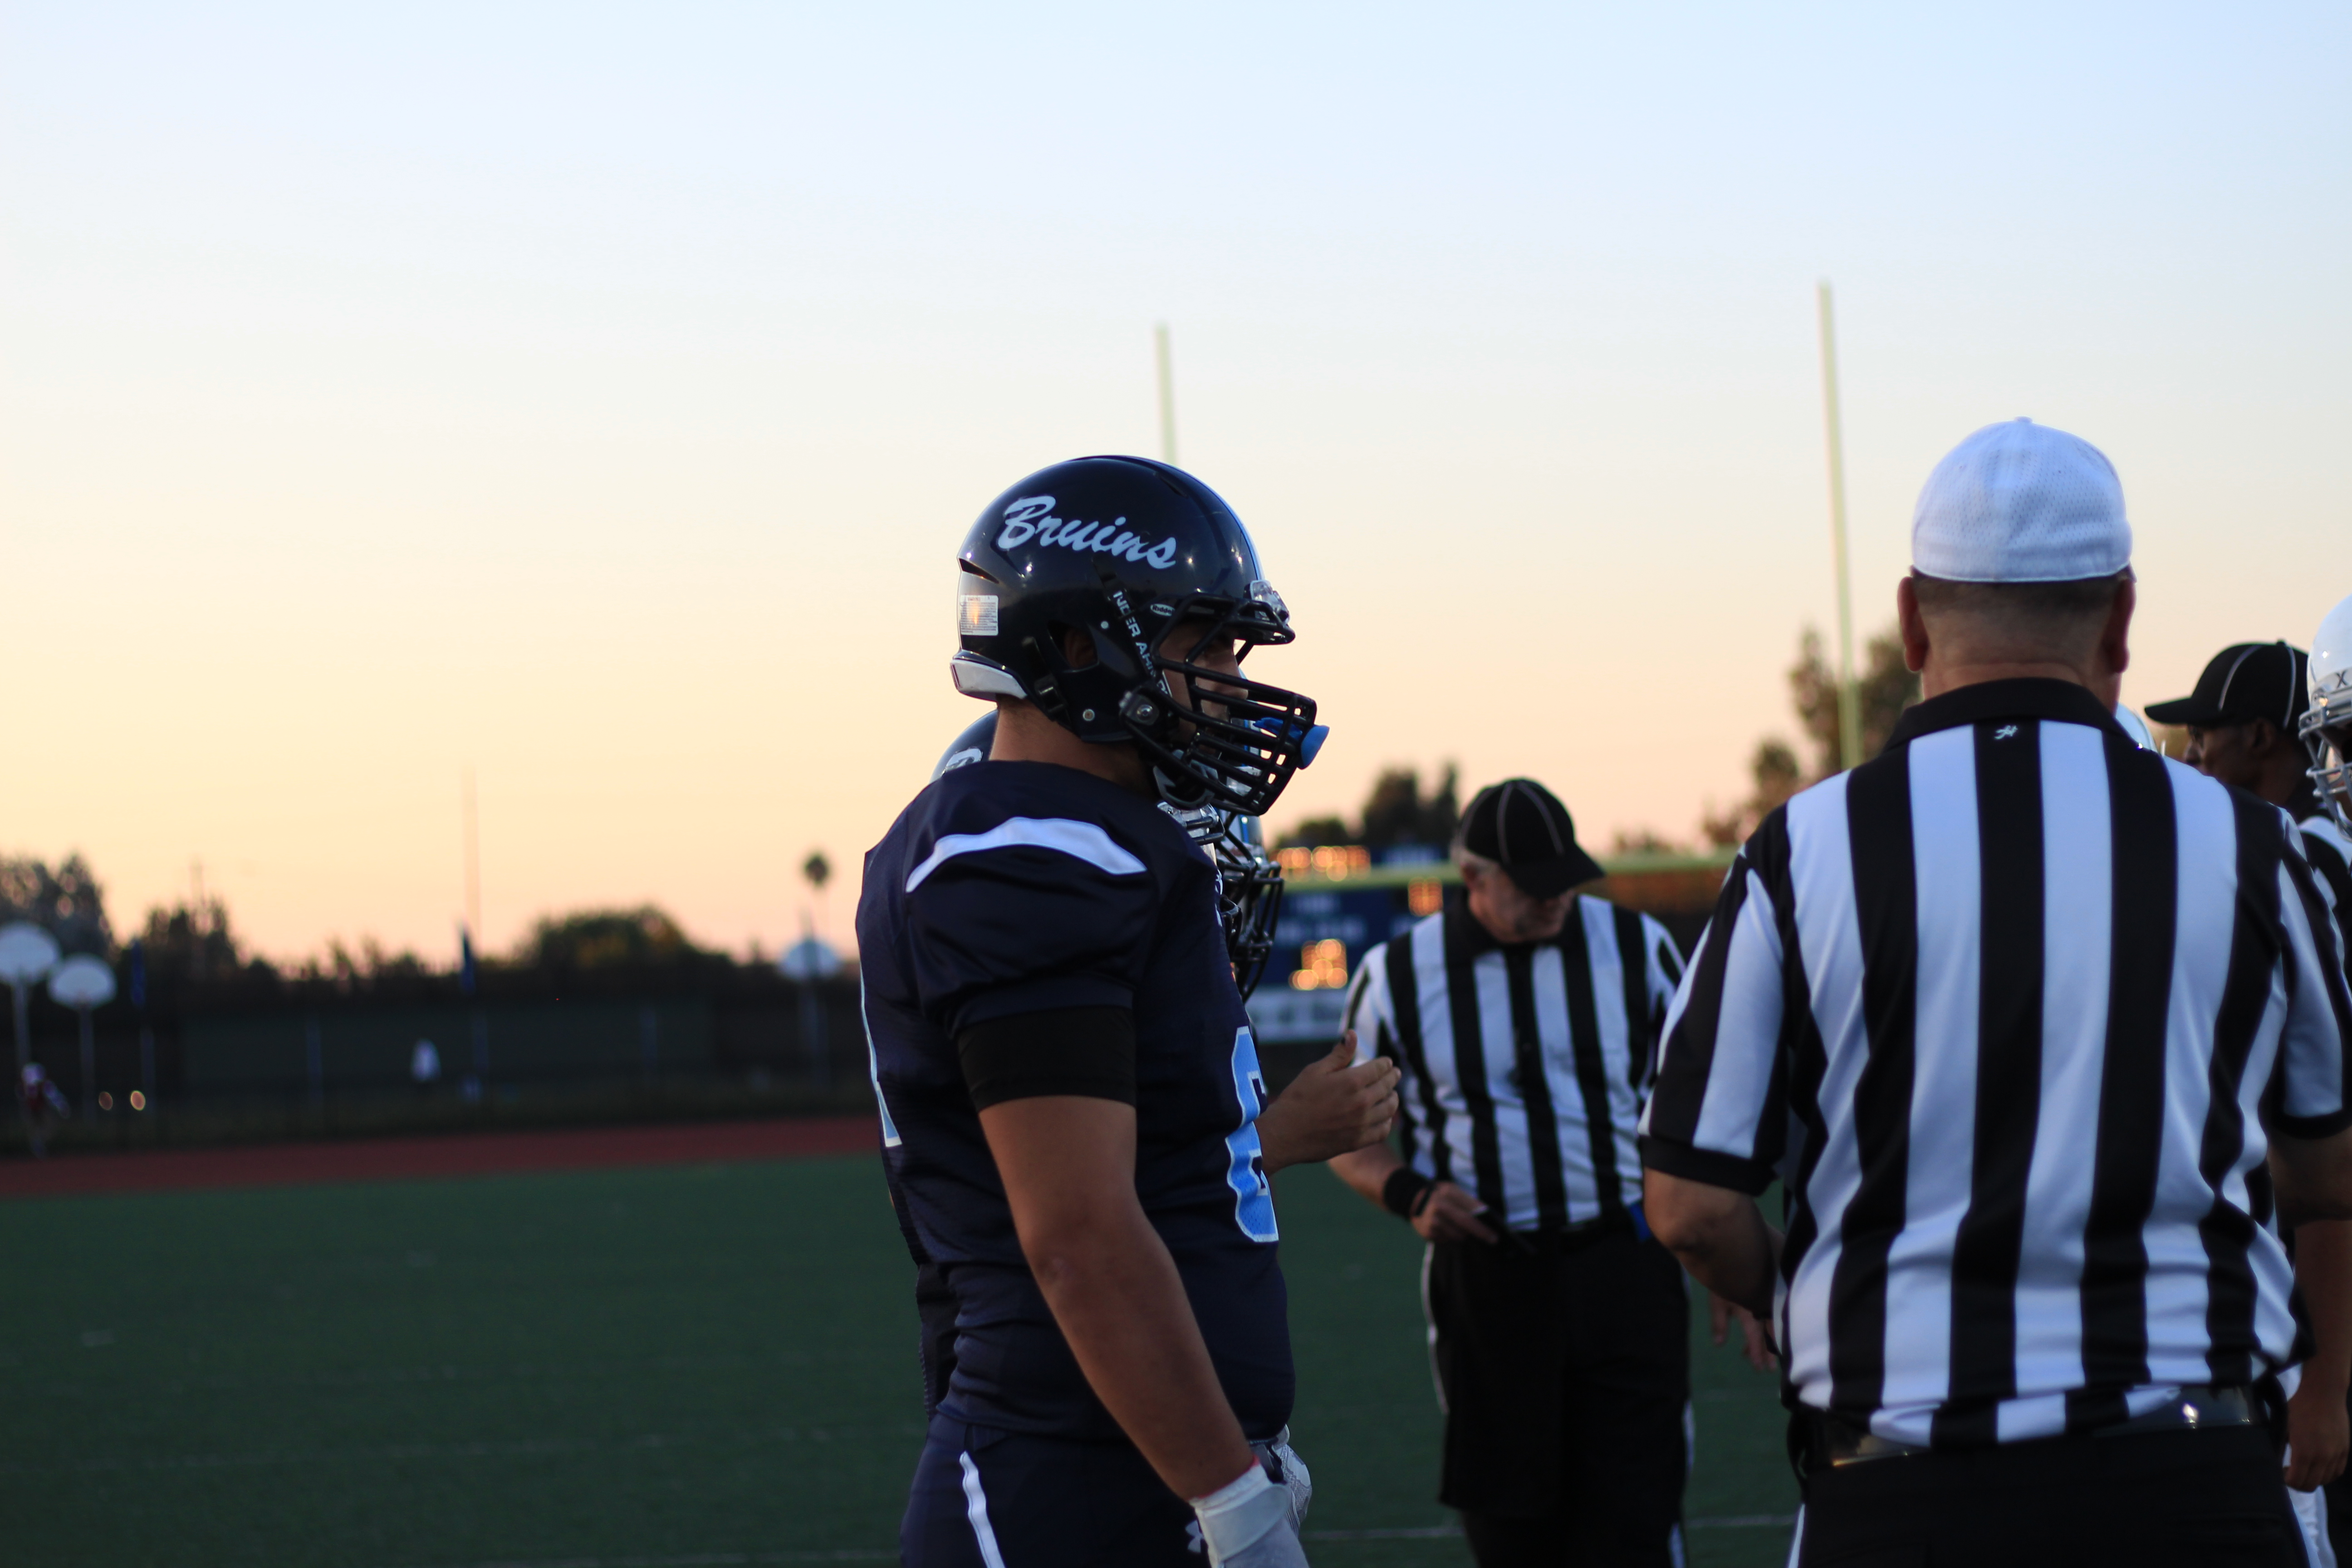 Senior Gavin Rodinsky is also the captain of our football team and kept our Bruins heads up when we were down in the first half.